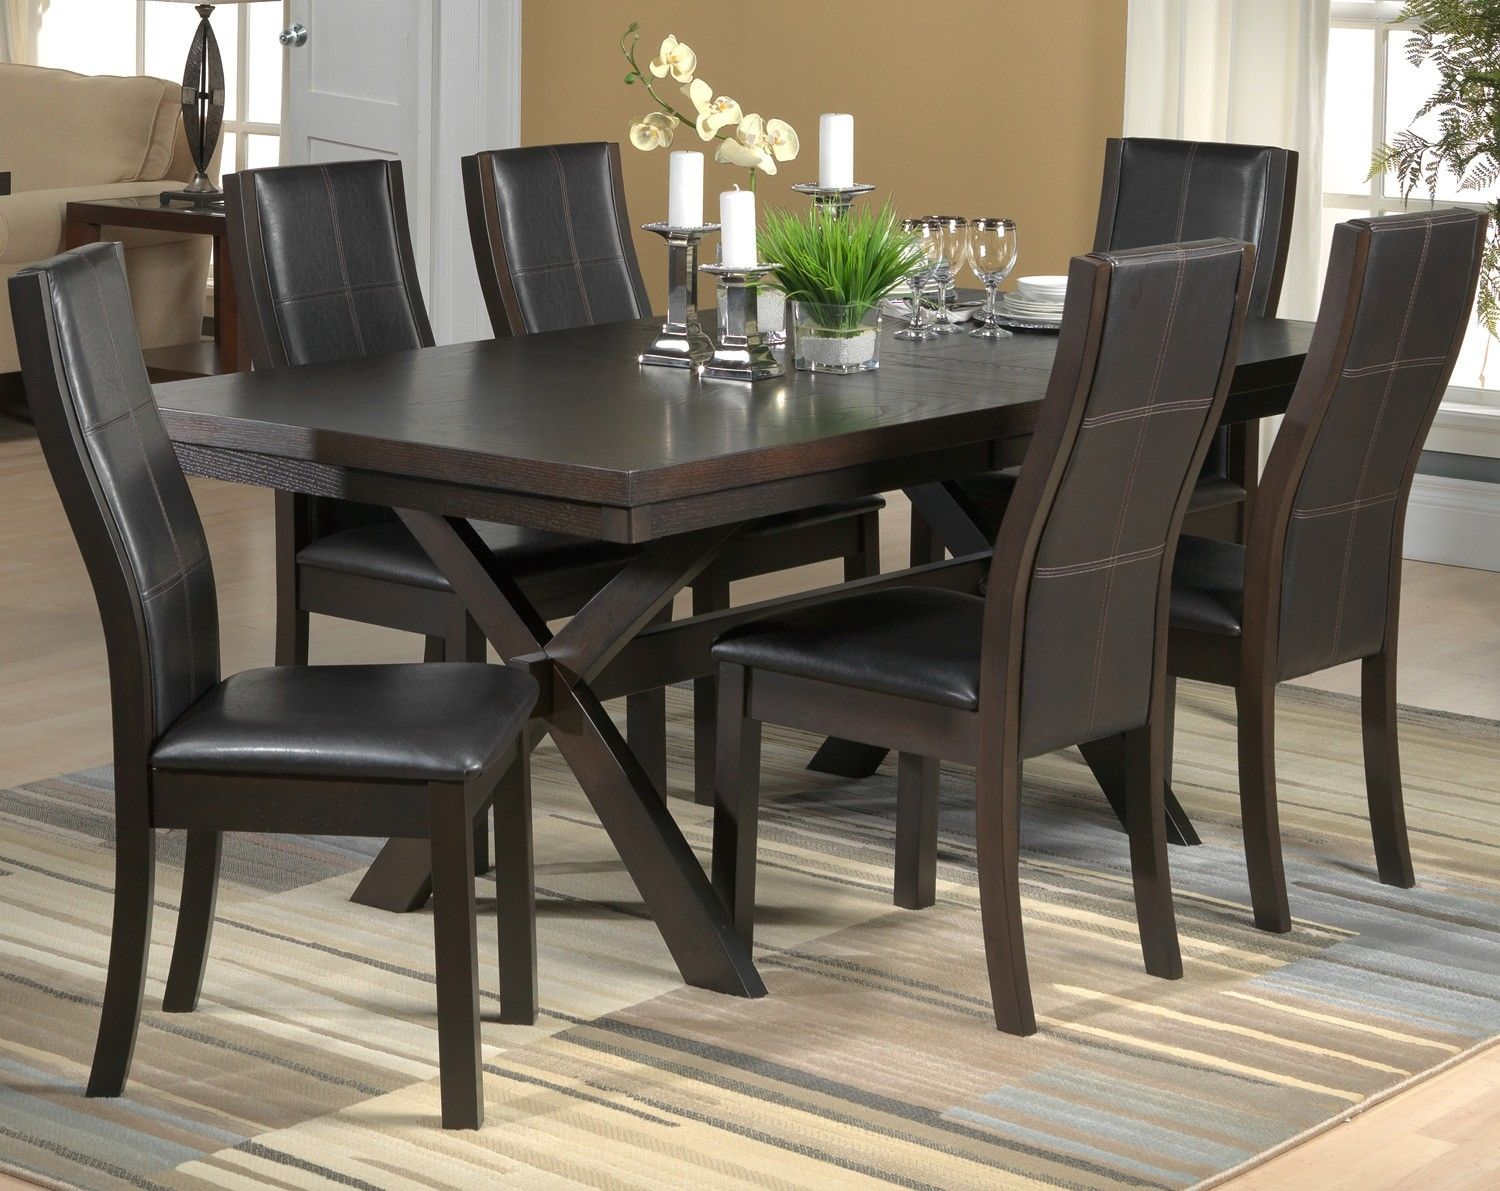 Grethell Dining Room 7 Pc Dining Set Leon S Round Dining Room